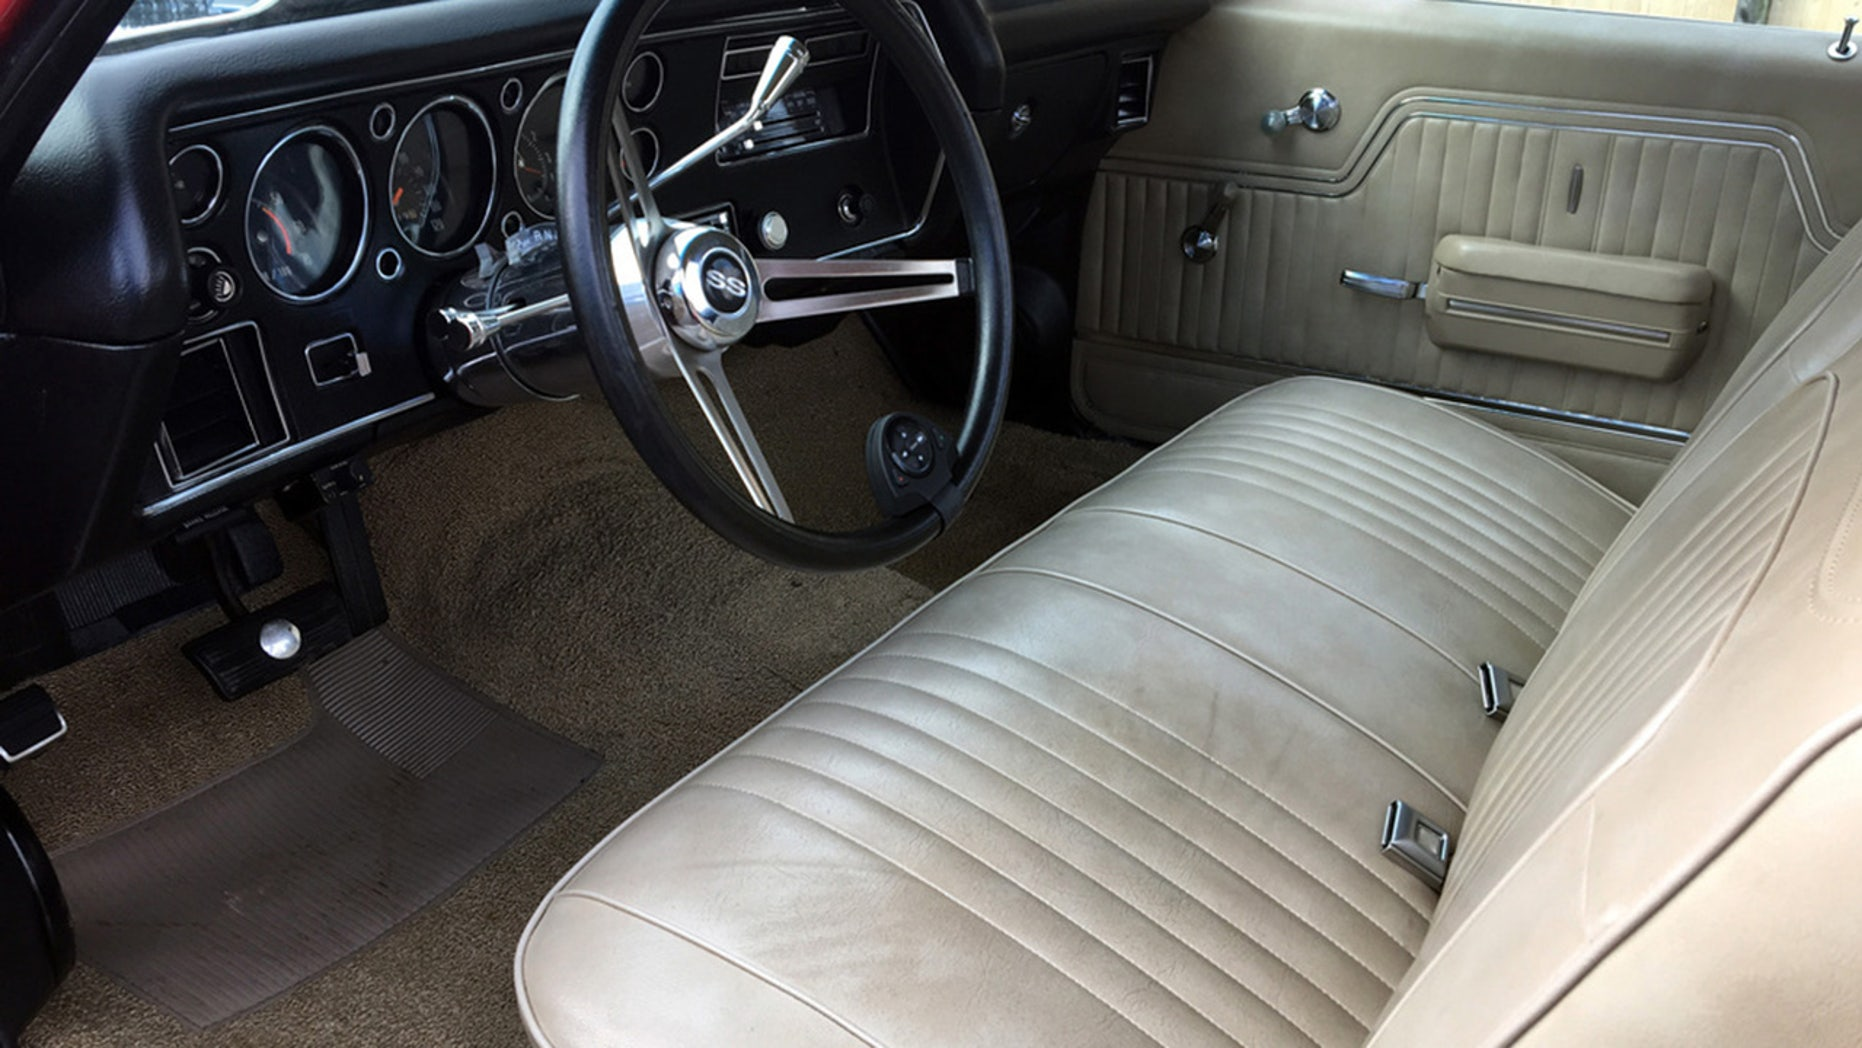 Jimmy Buffet's 1972 Chevrolet El Camino SS Interior